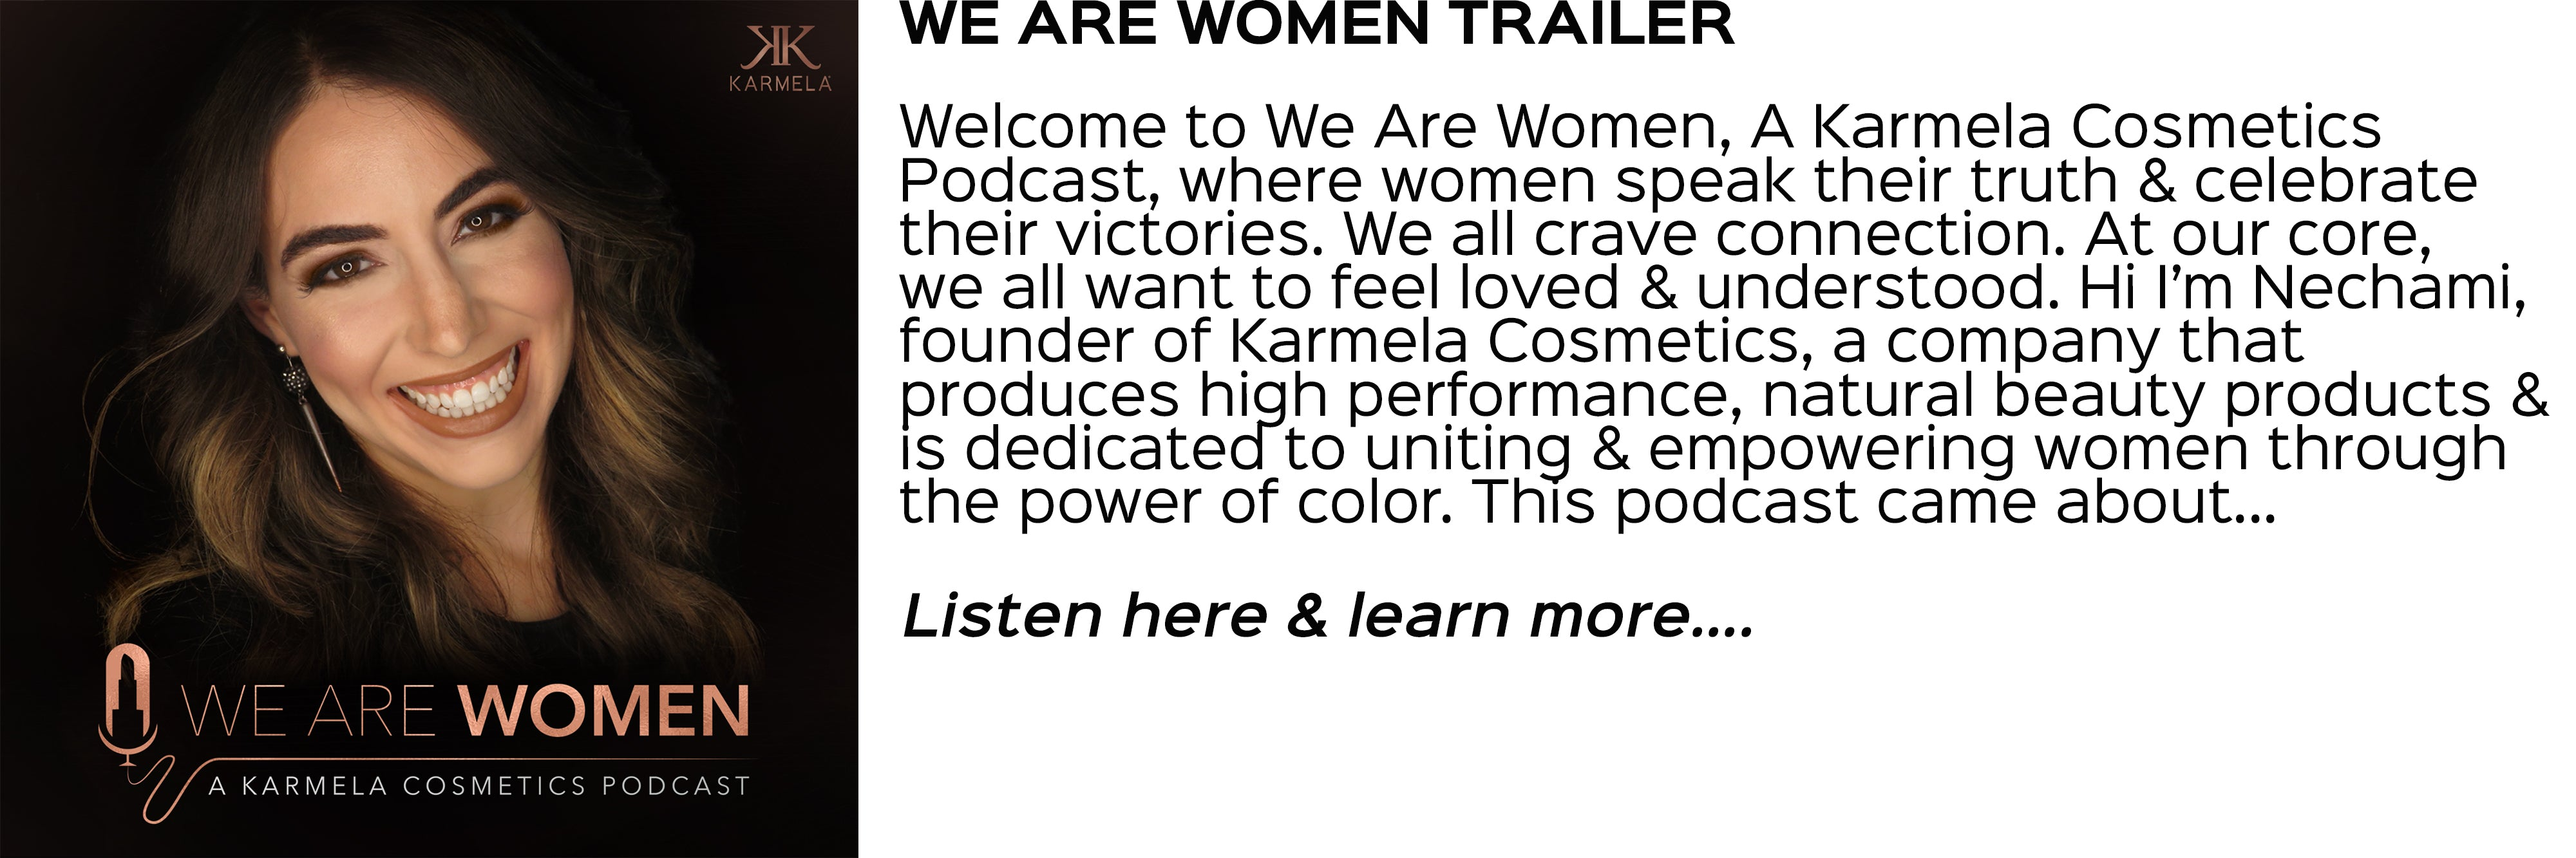 we are women trailer